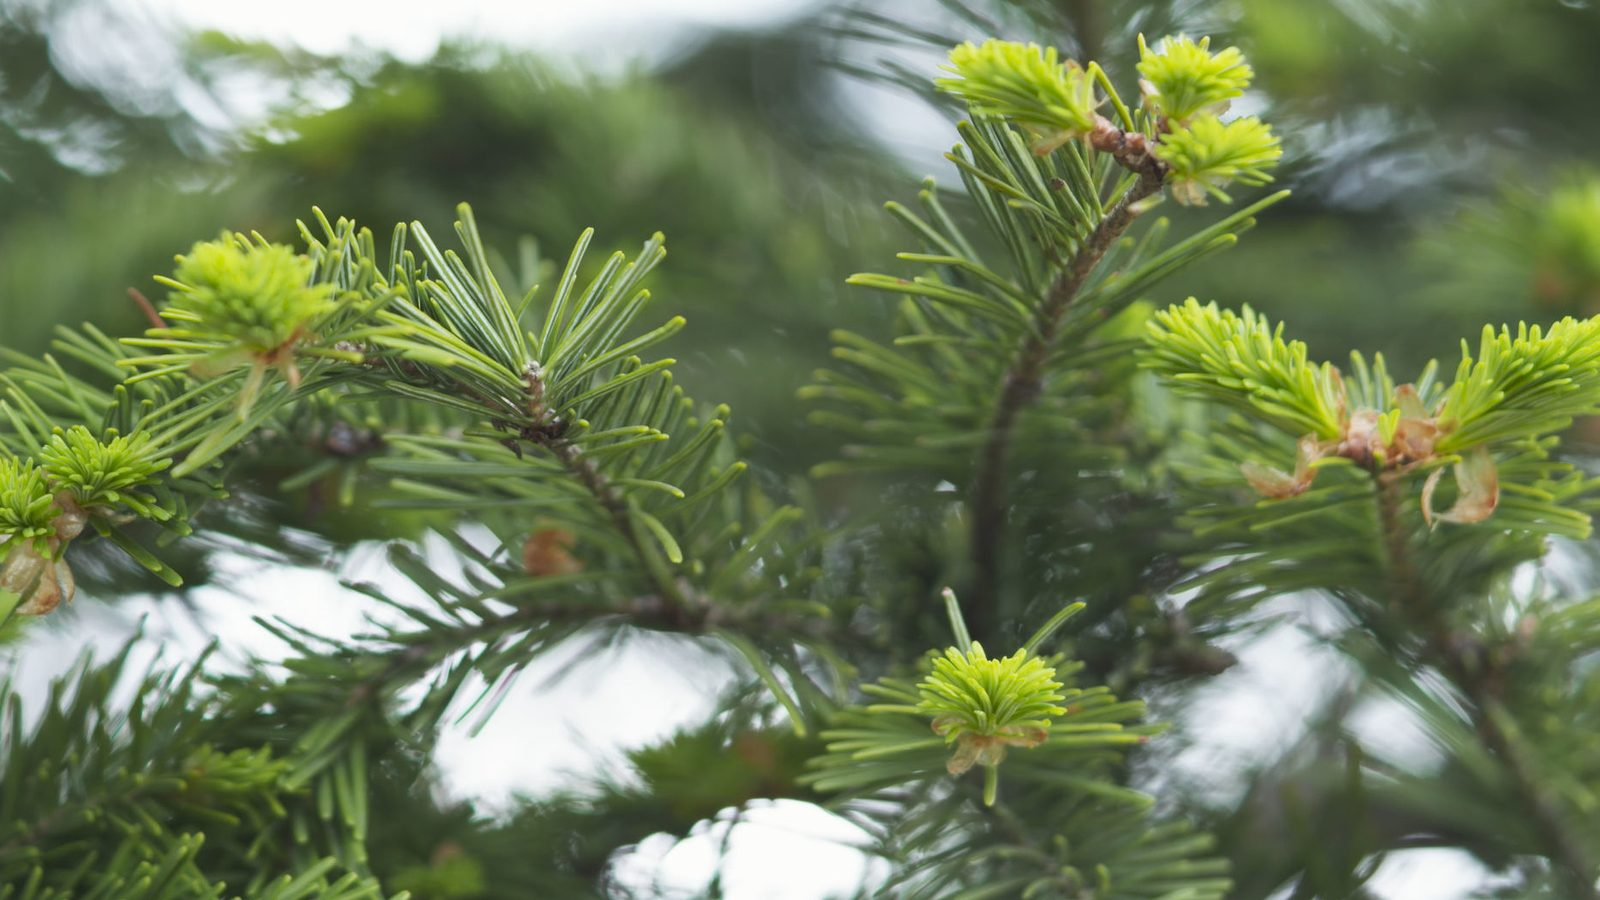 Tree of the month: Spruce